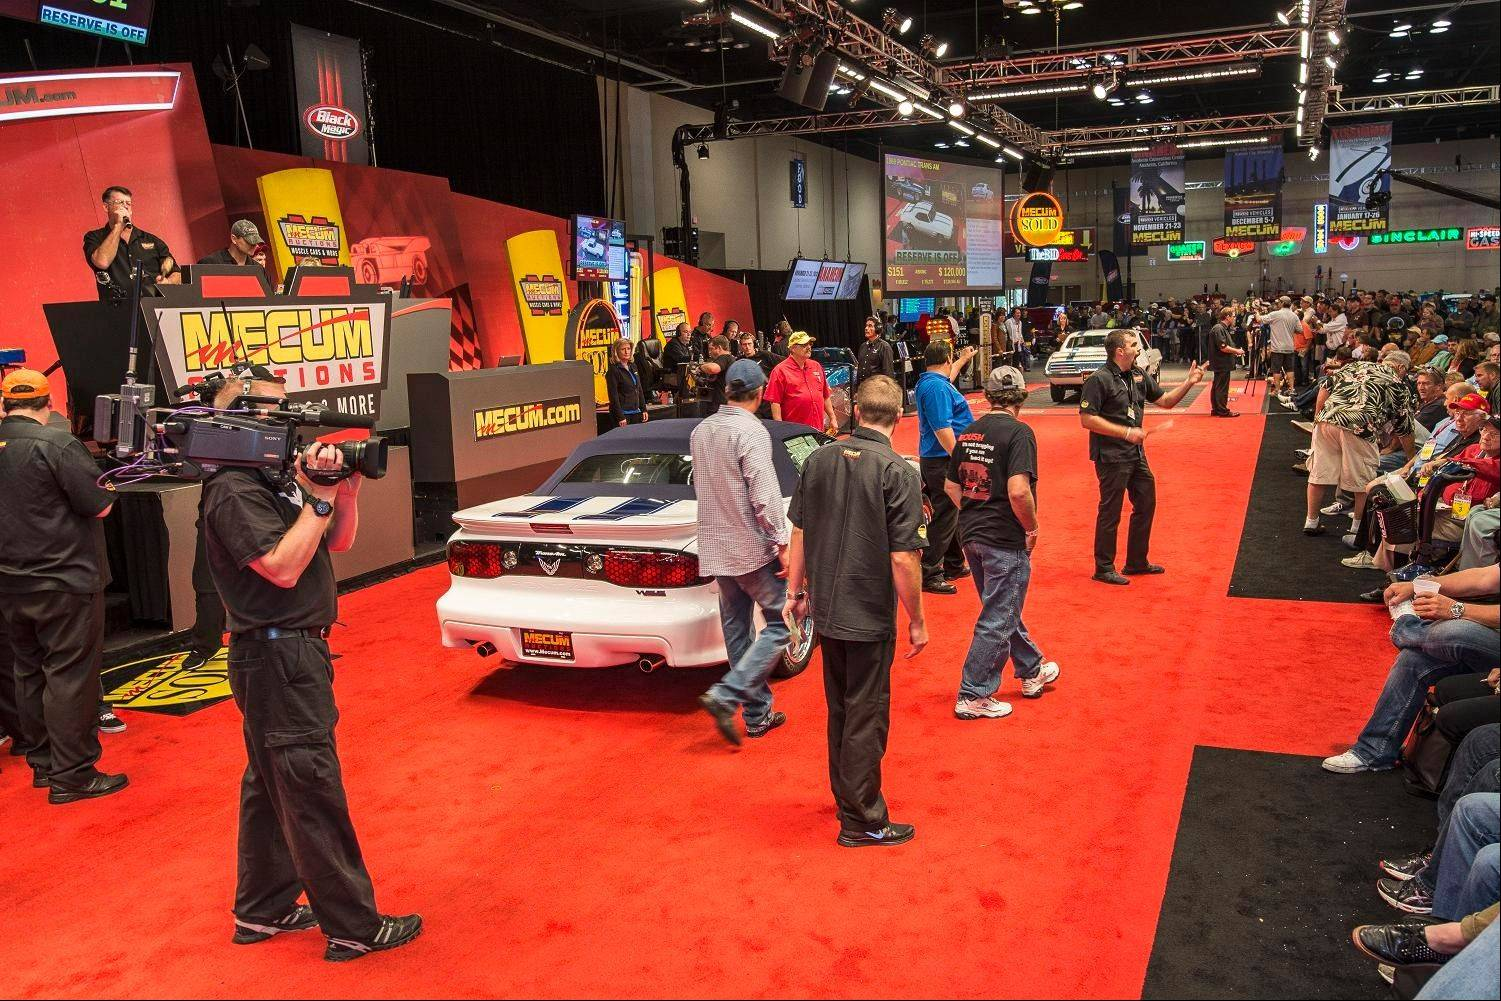 The action was fast paced when Mecum Auctions came to the Schaumburg Convention Center.